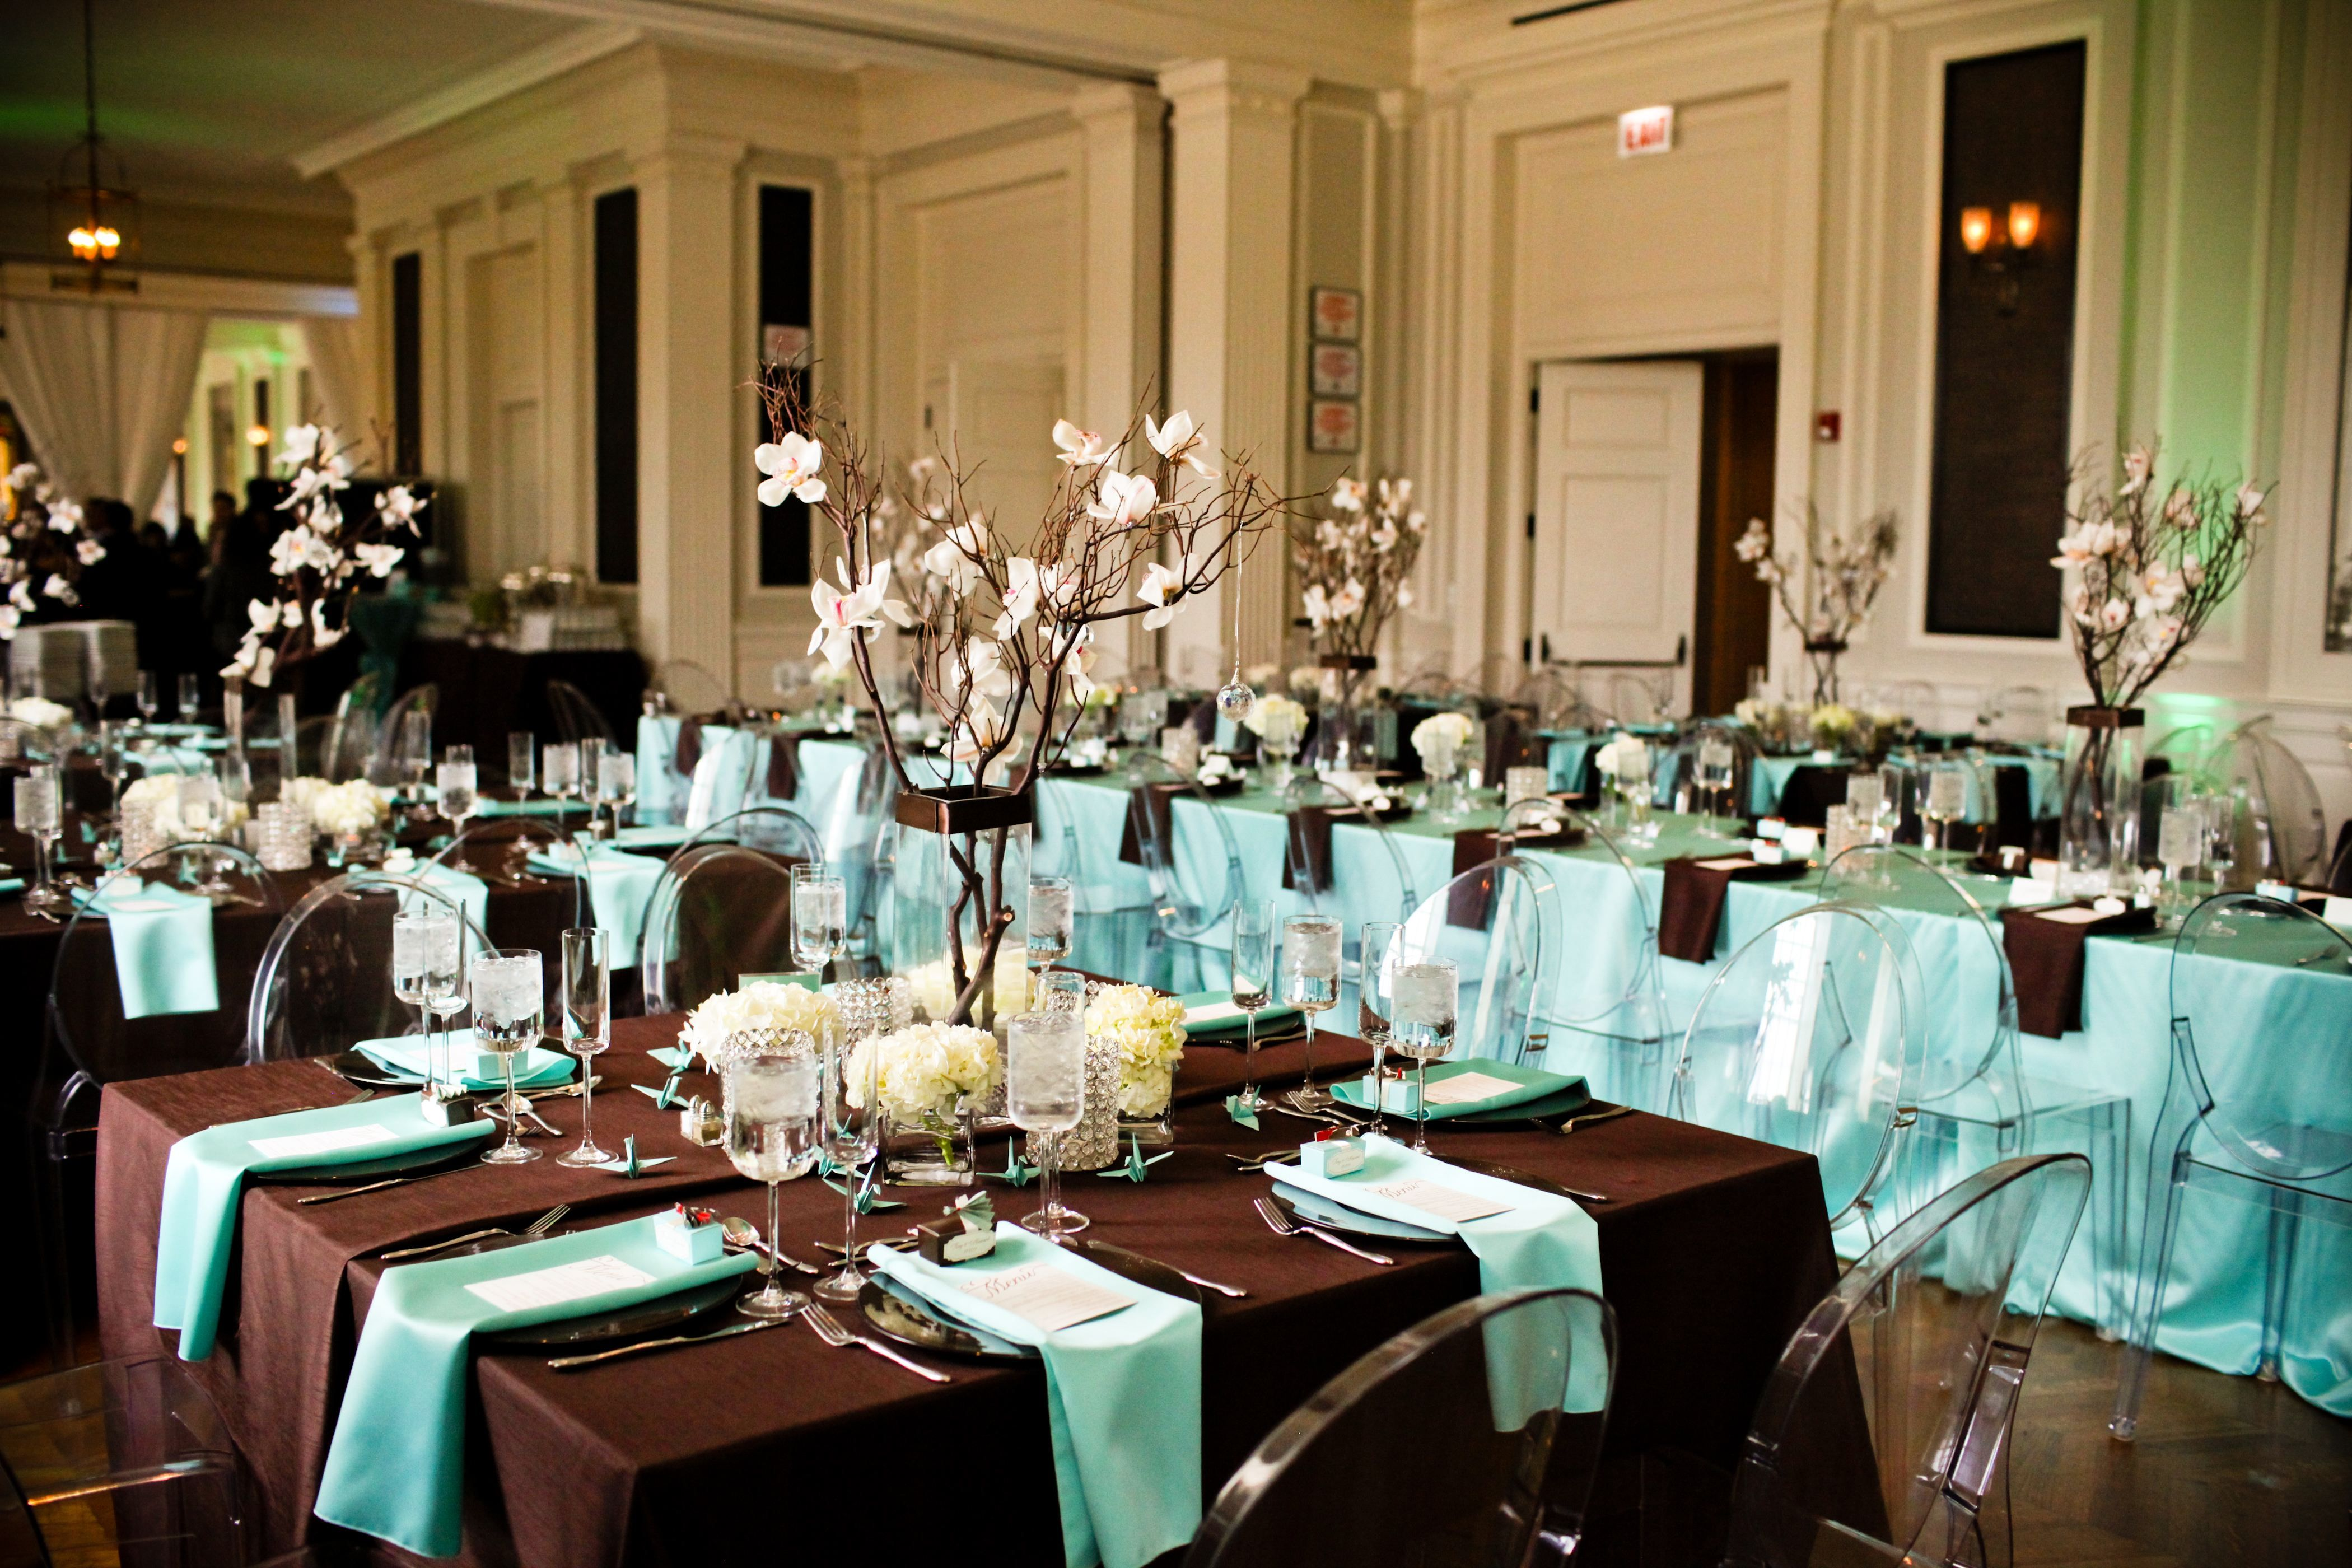 MY ART GALLERY WHERE THE RECEPTION WILL BE! | wedding reception inspiration | Pinterest | Southern bride Southern weddings and Wedding & MY ART GALLERY WHERE THE RECEPTION WILL BE! | wedding reception ...